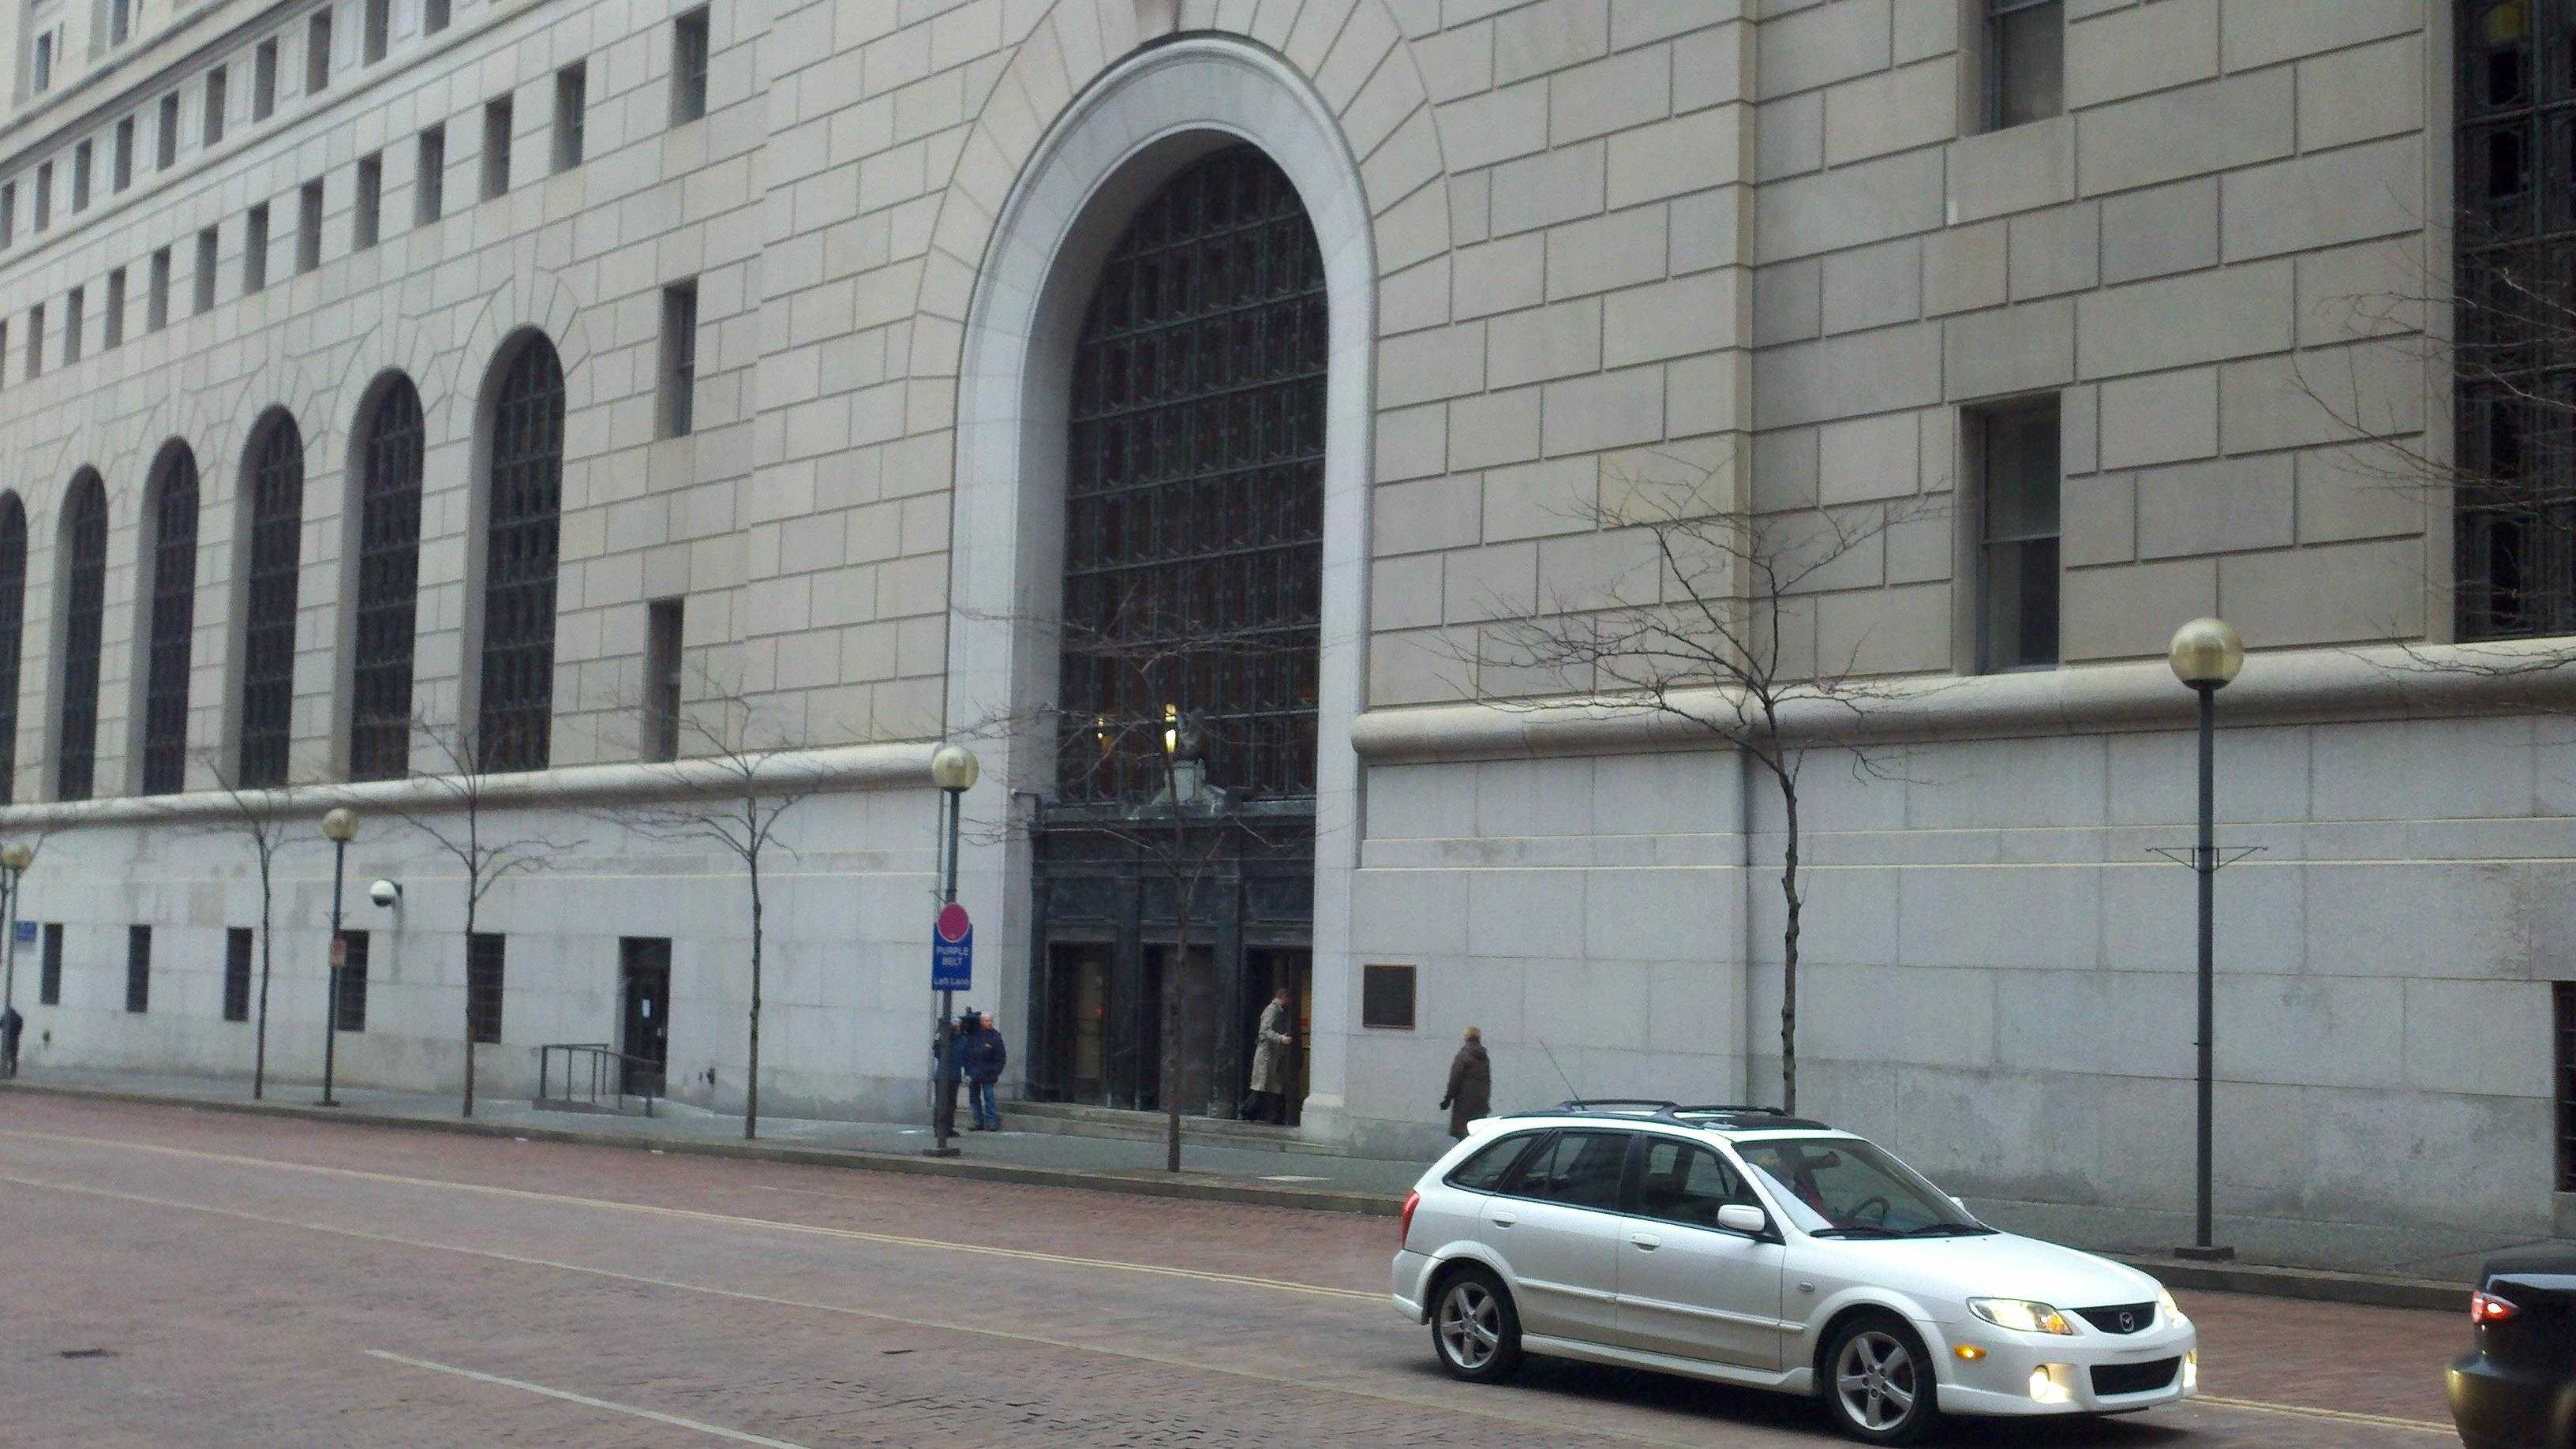 Federal courthouse in downtown Pittsburgh